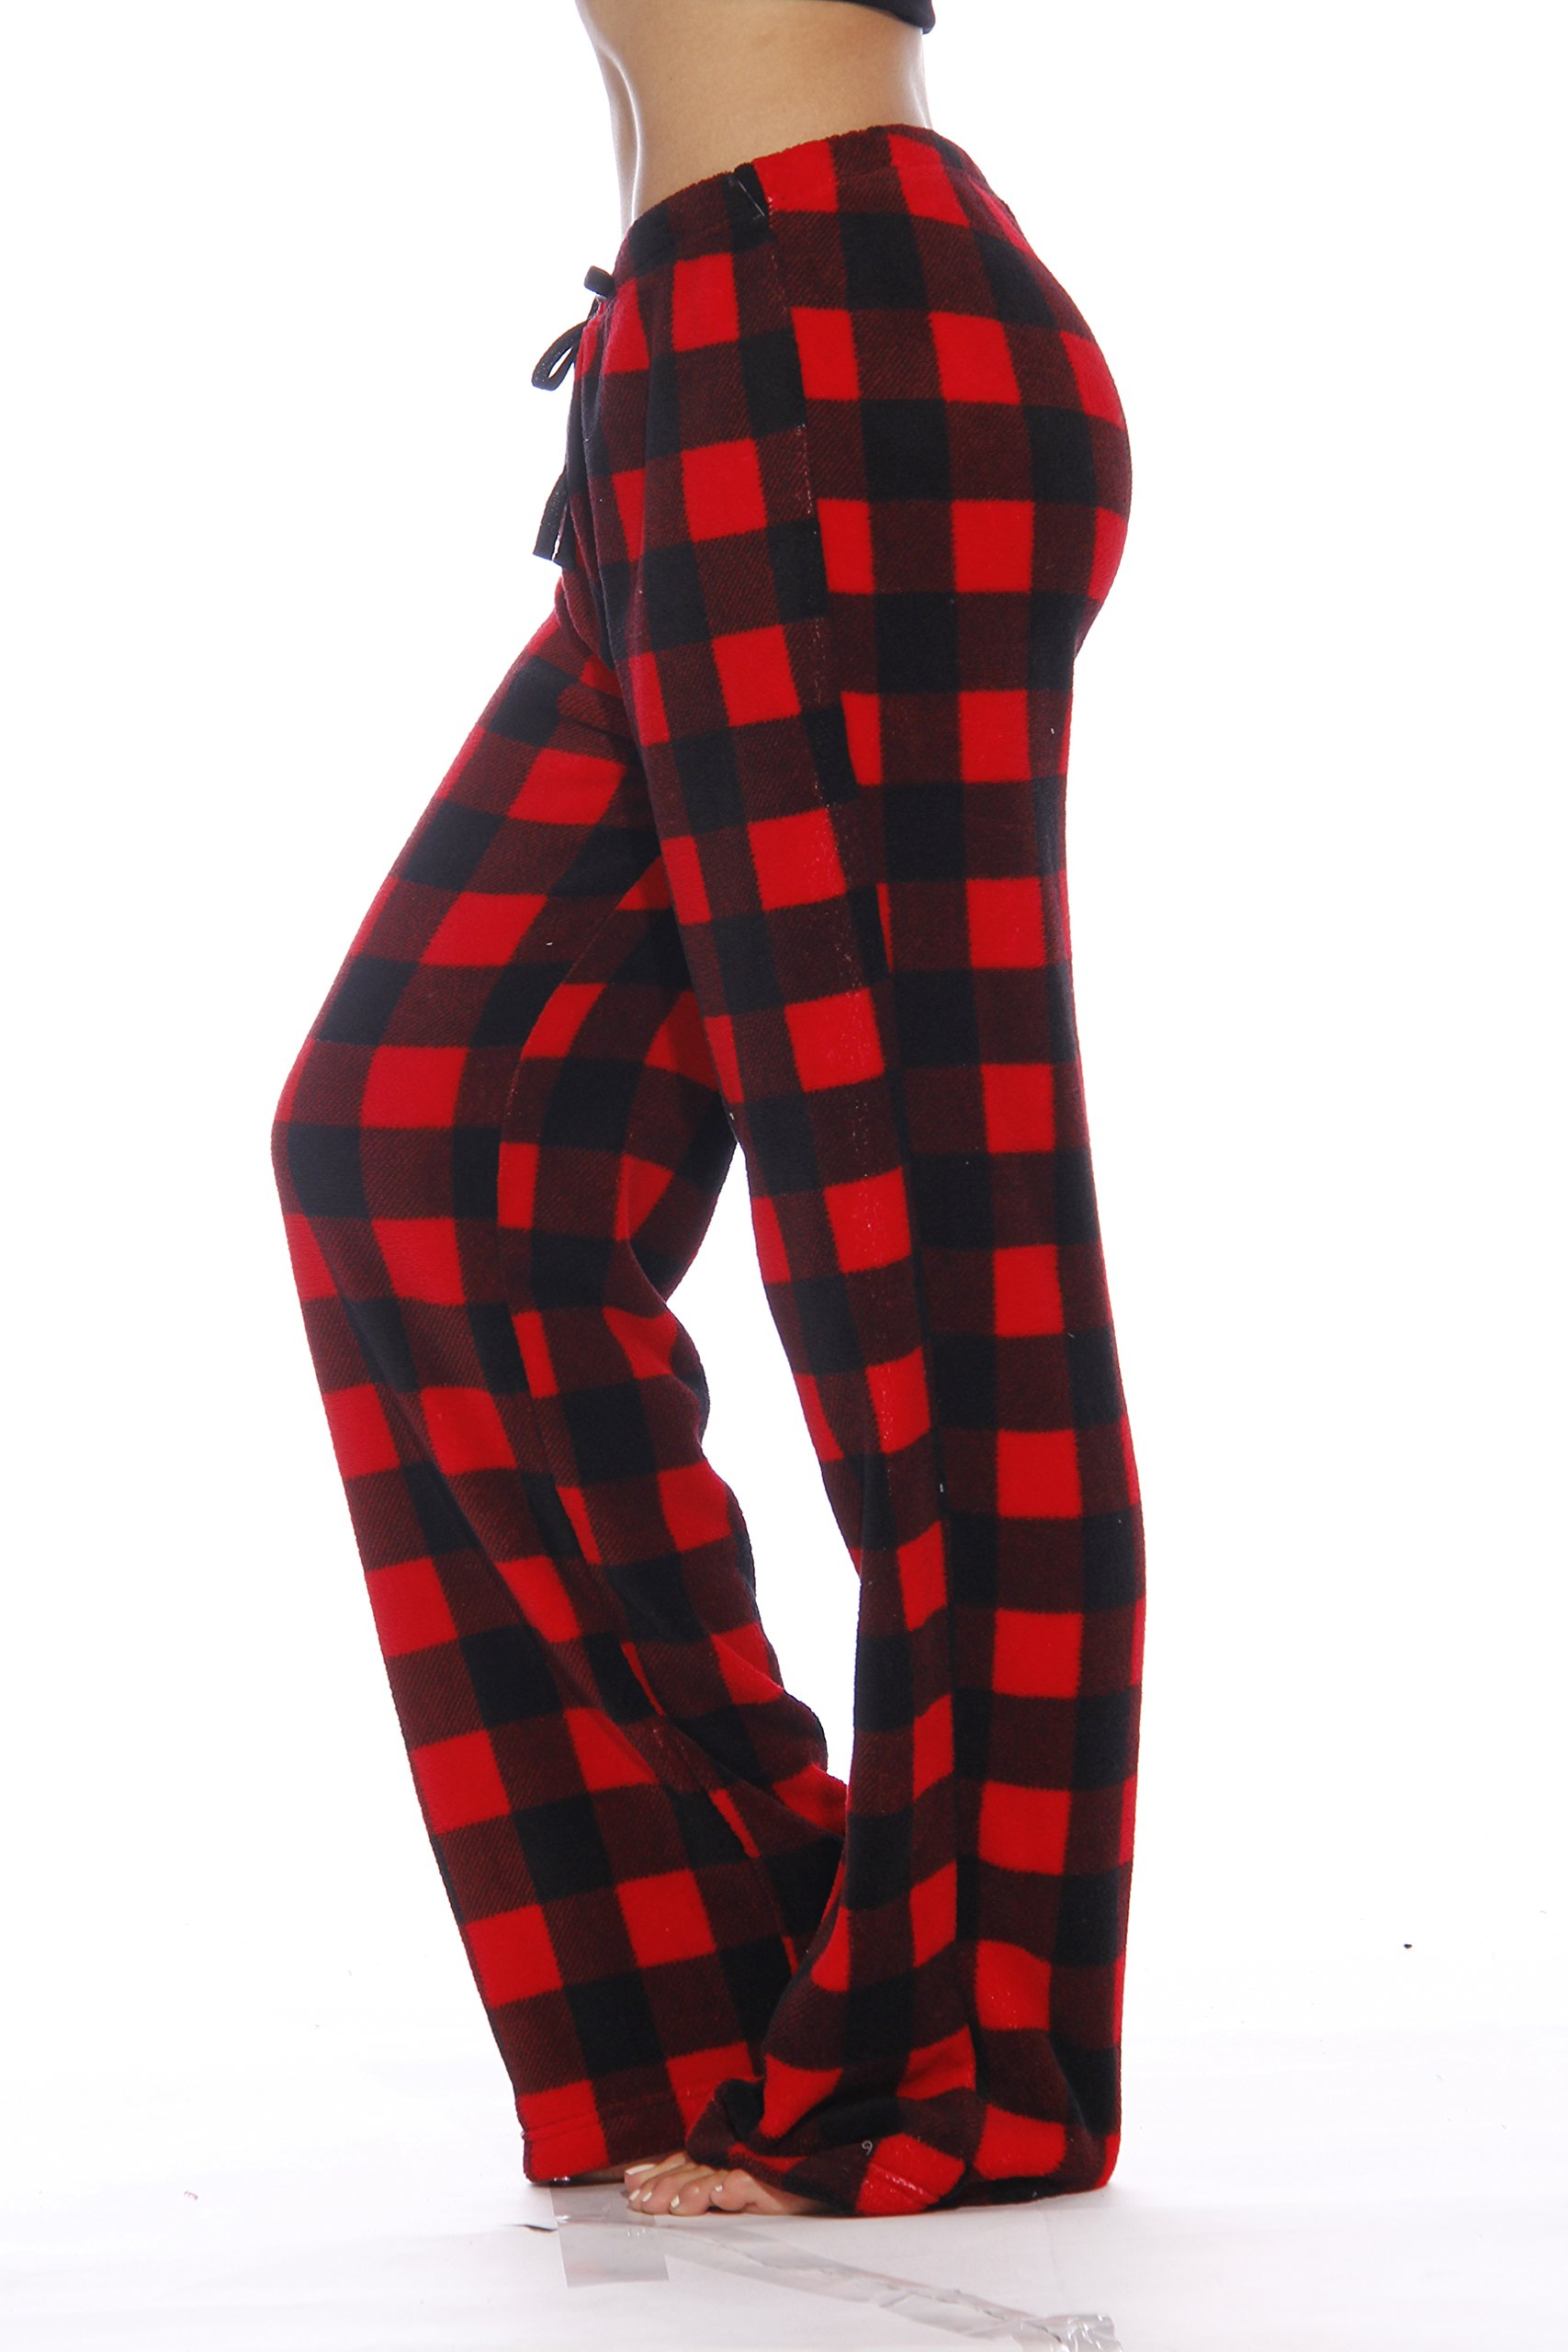 Just Love Women's Plush Pajama Pants, Small, Buffalo Plaid Red by Just Love (Image #2)